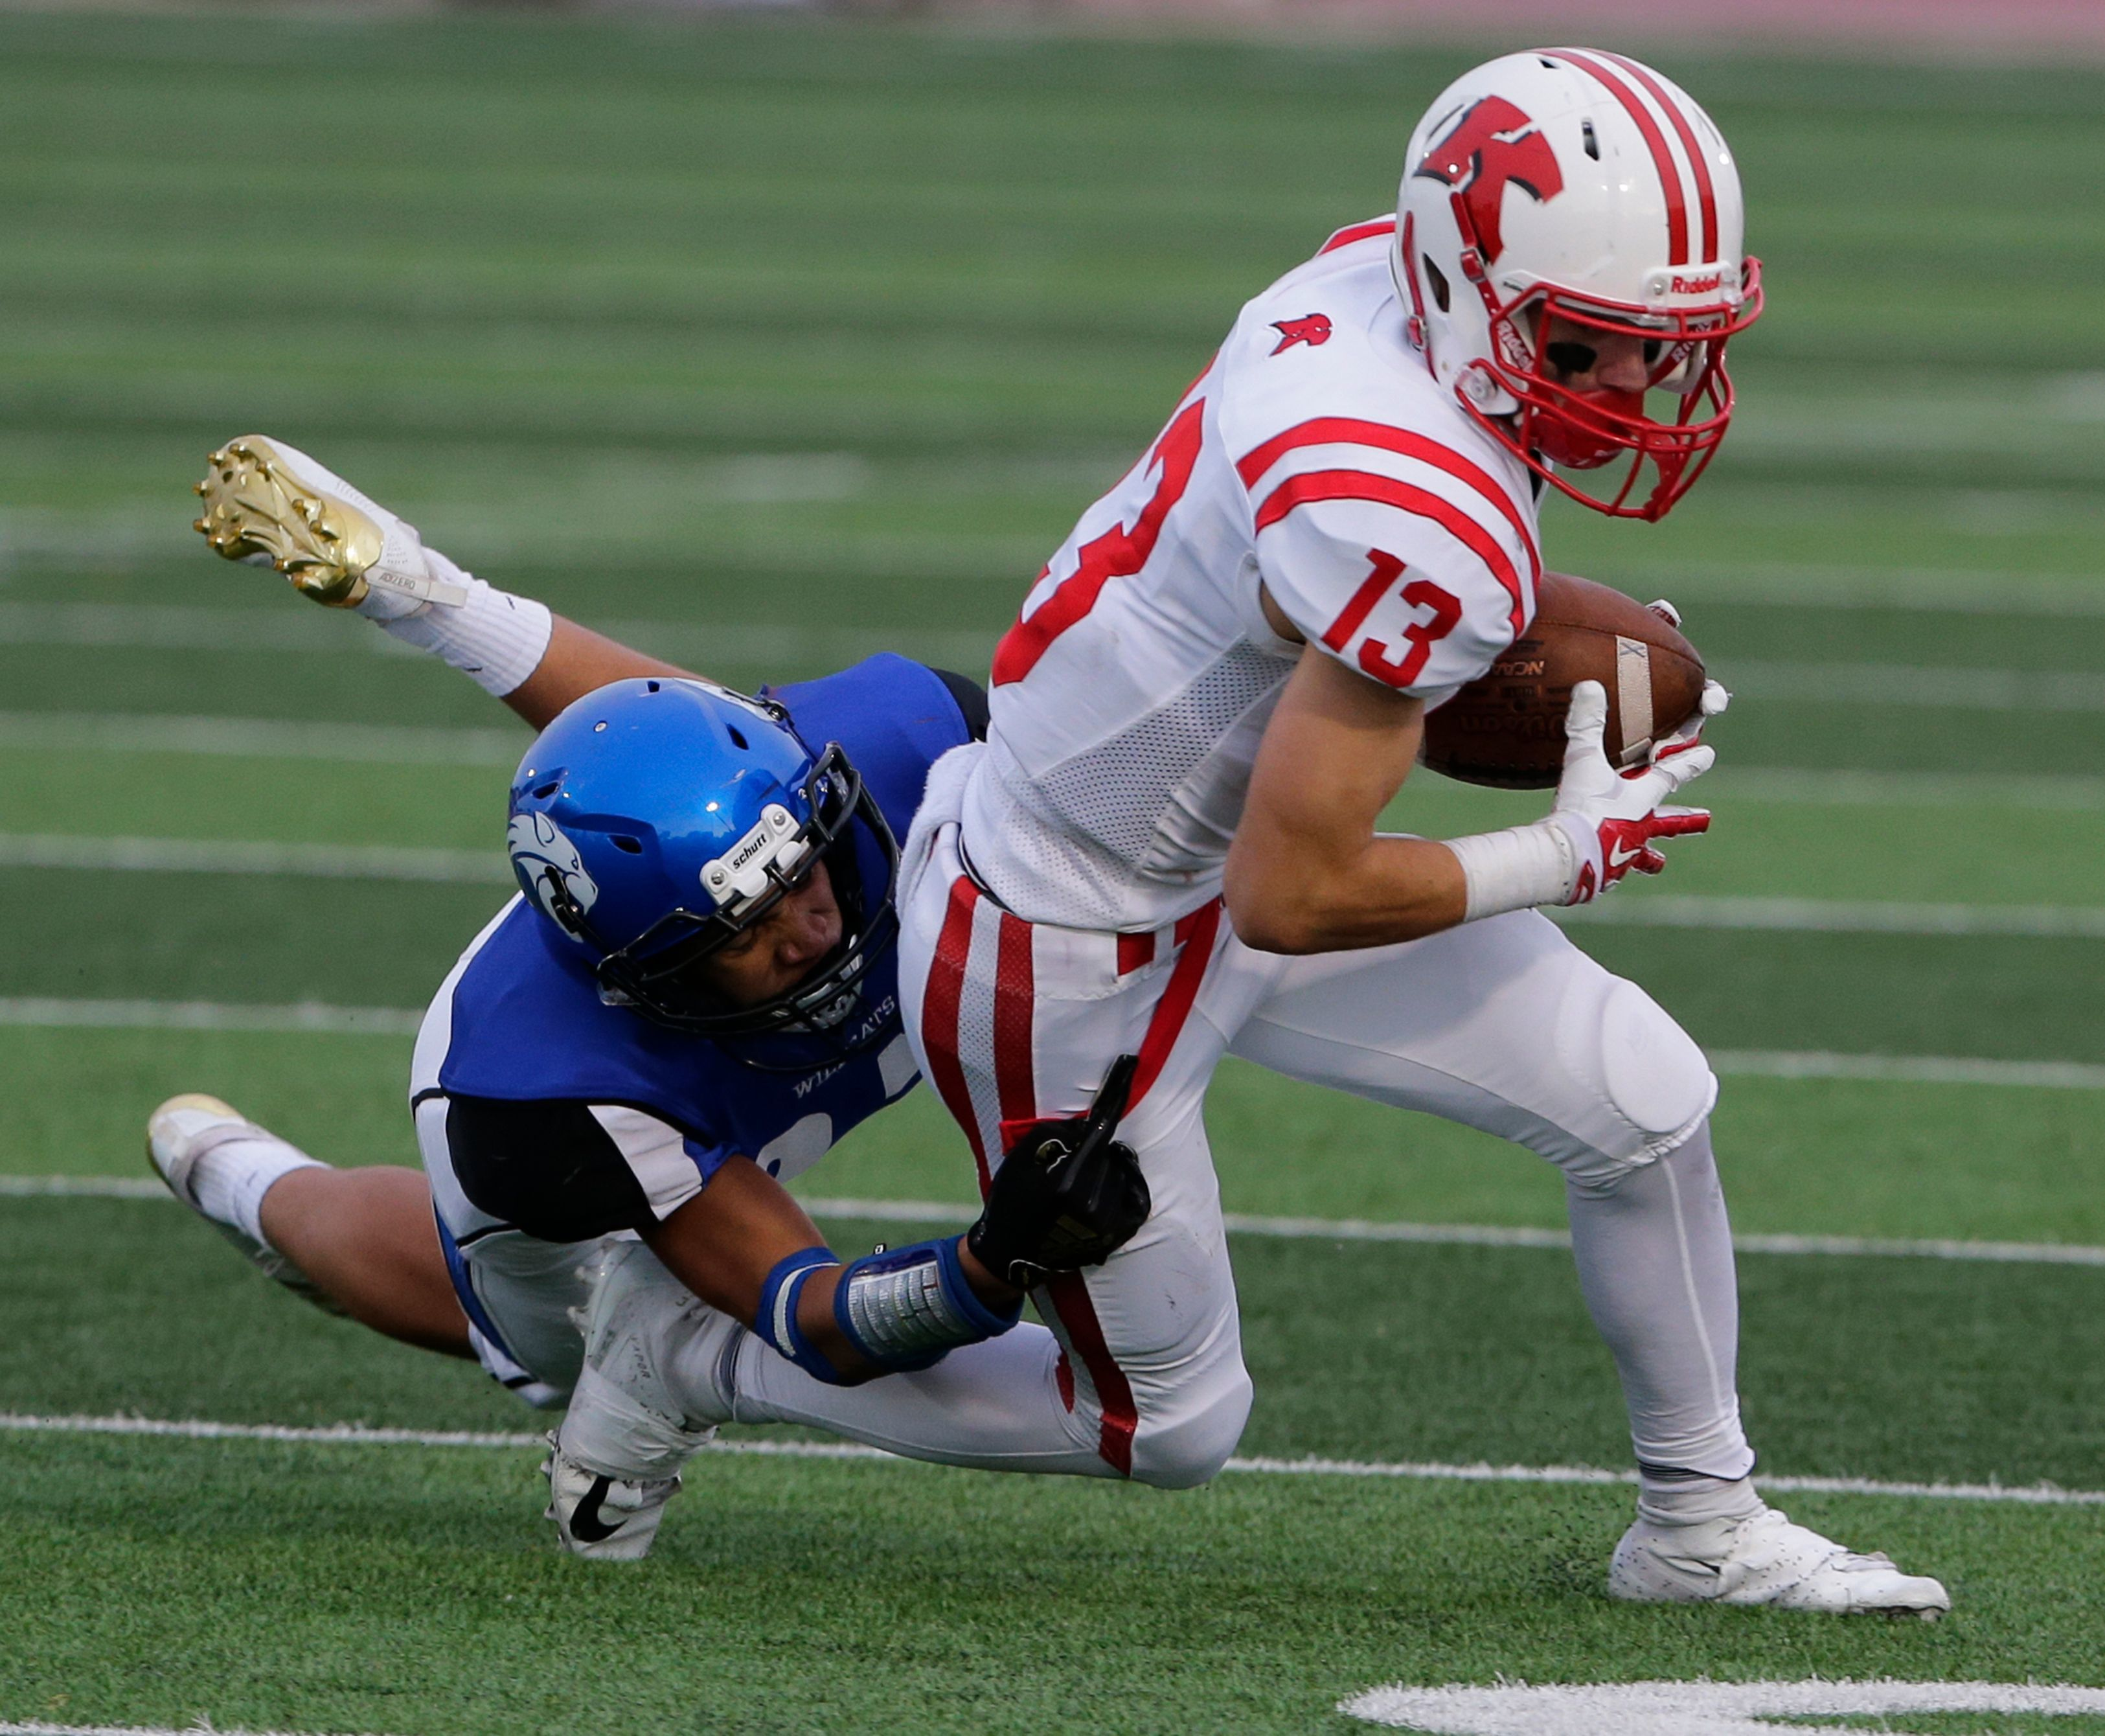 Kimberly's Zach Lechnir makes a catch against Oshkosh West during a Valley Football Association game on Sept. 7 at Titan Stadium in Oshkosh.